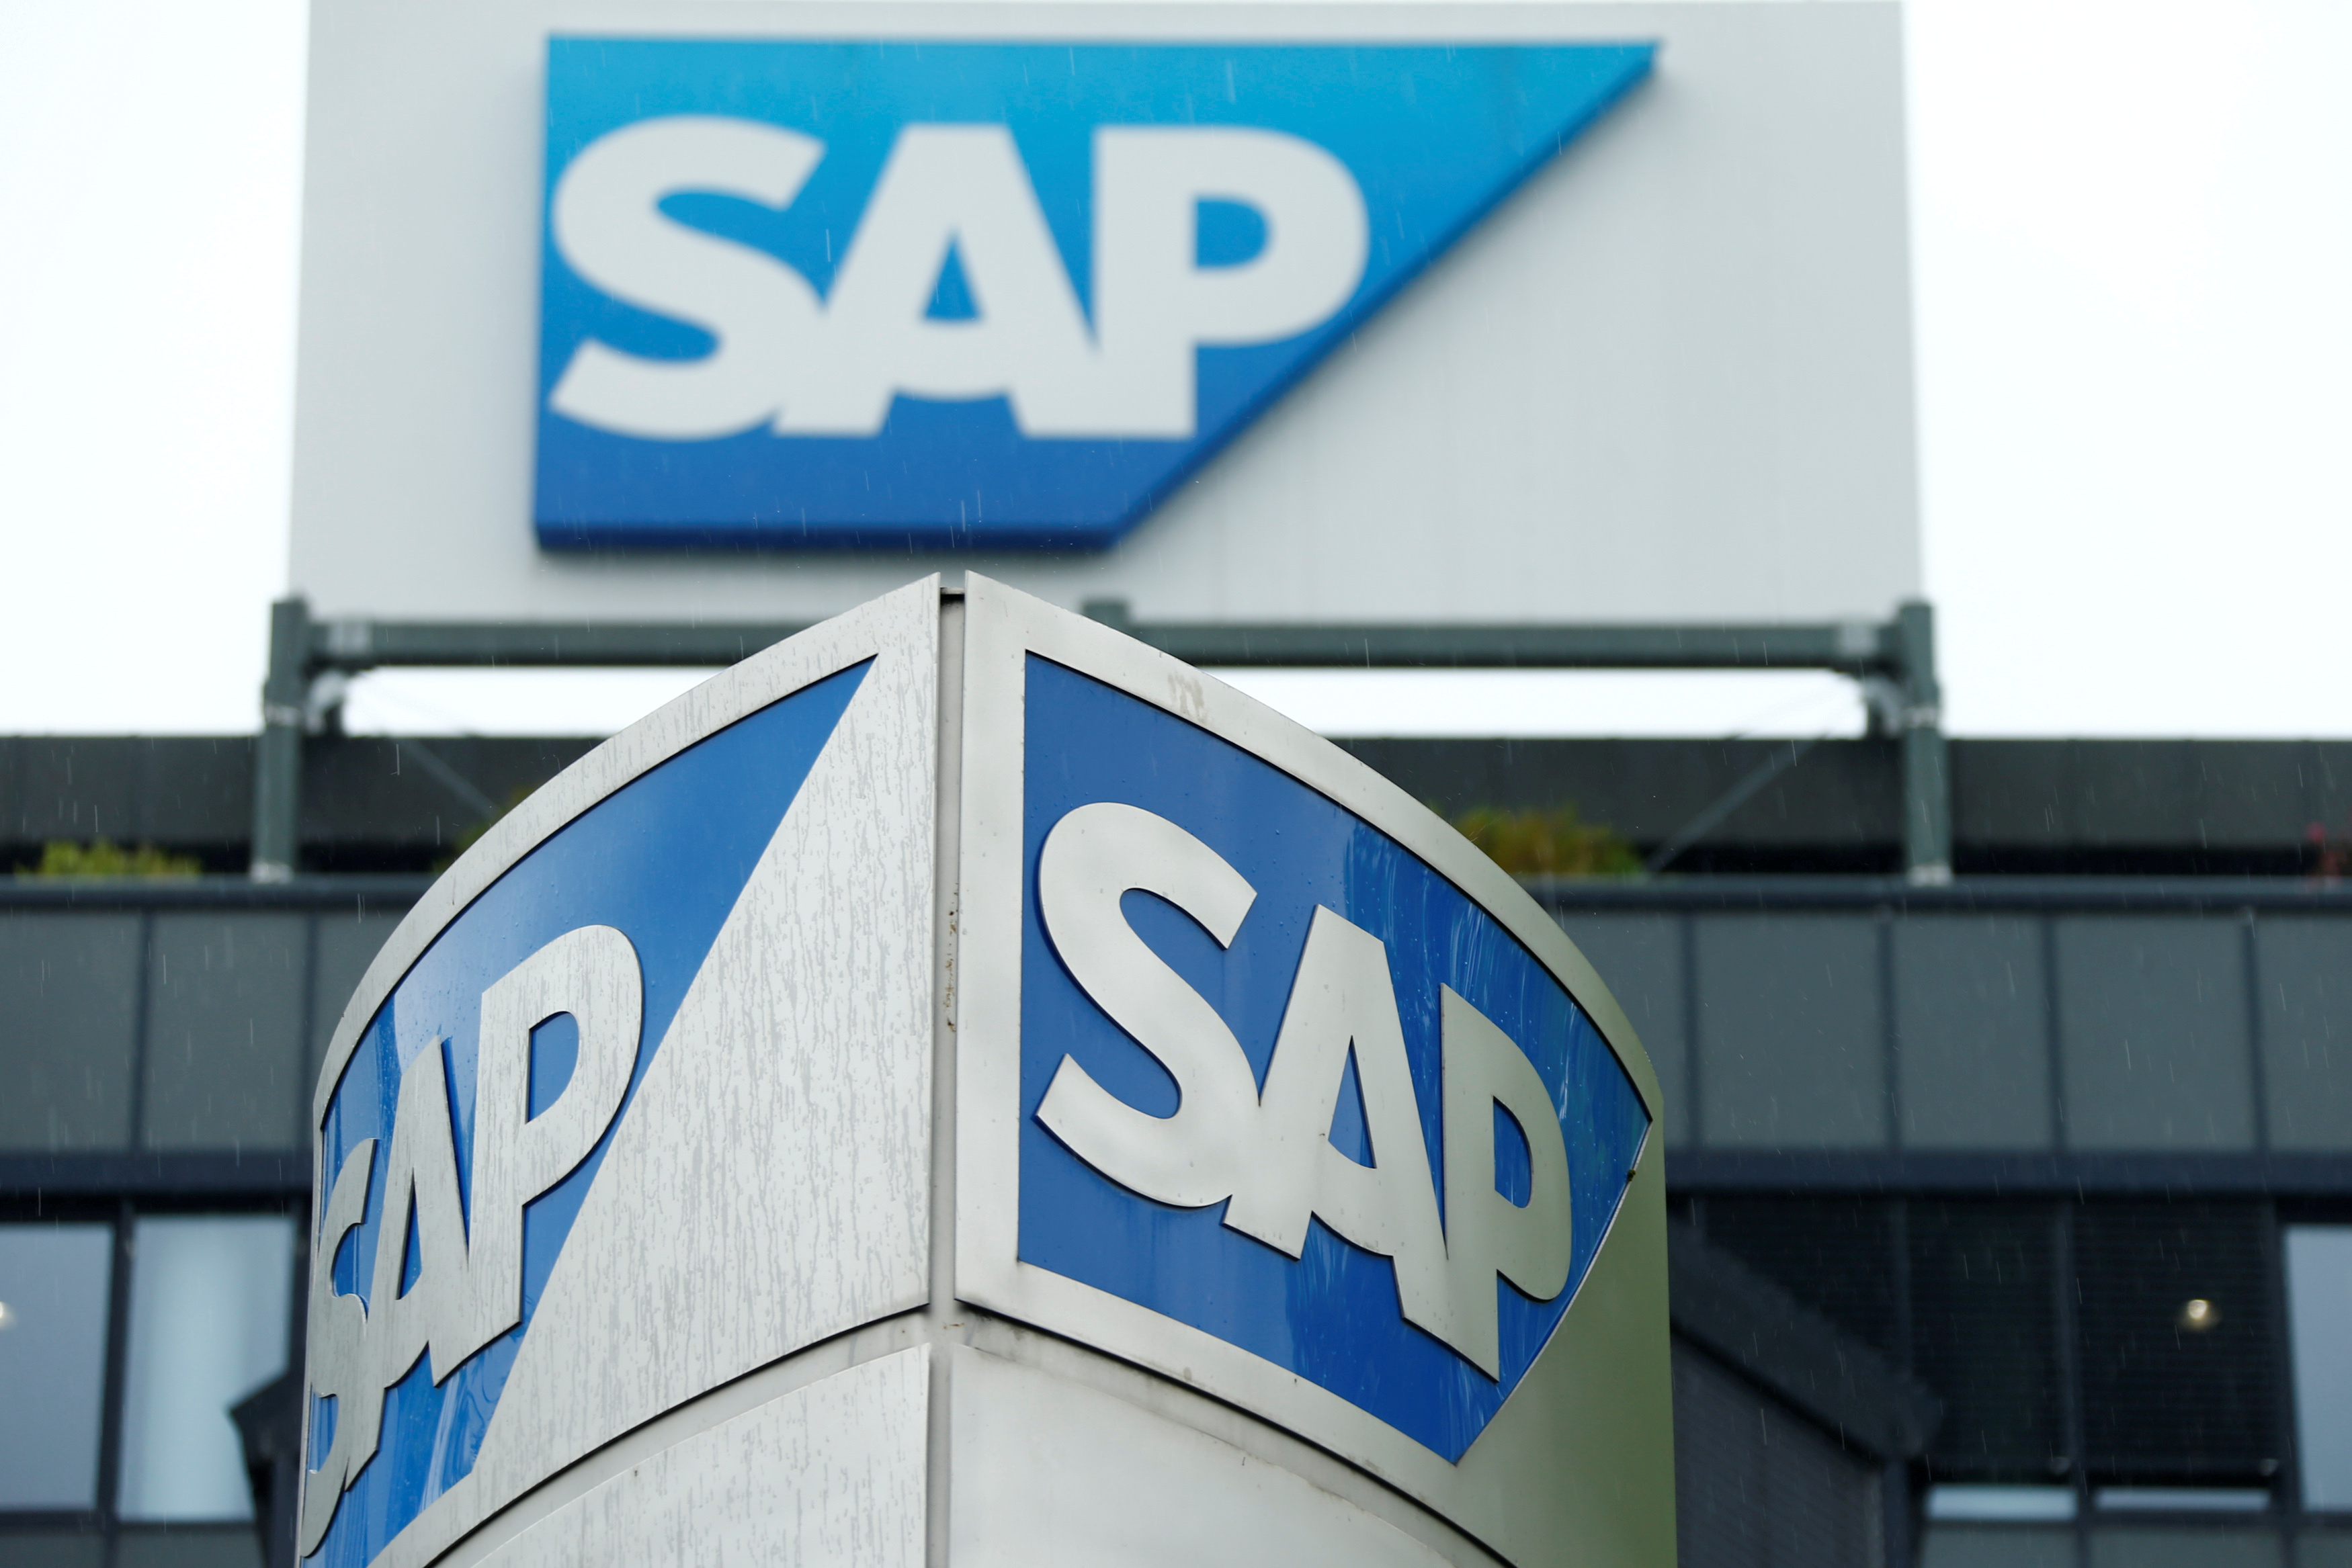 The SAP logo is pictured in Walldorf, Germany, May 12, 2016. REUTERS/Ralph Orlowski/File Photo